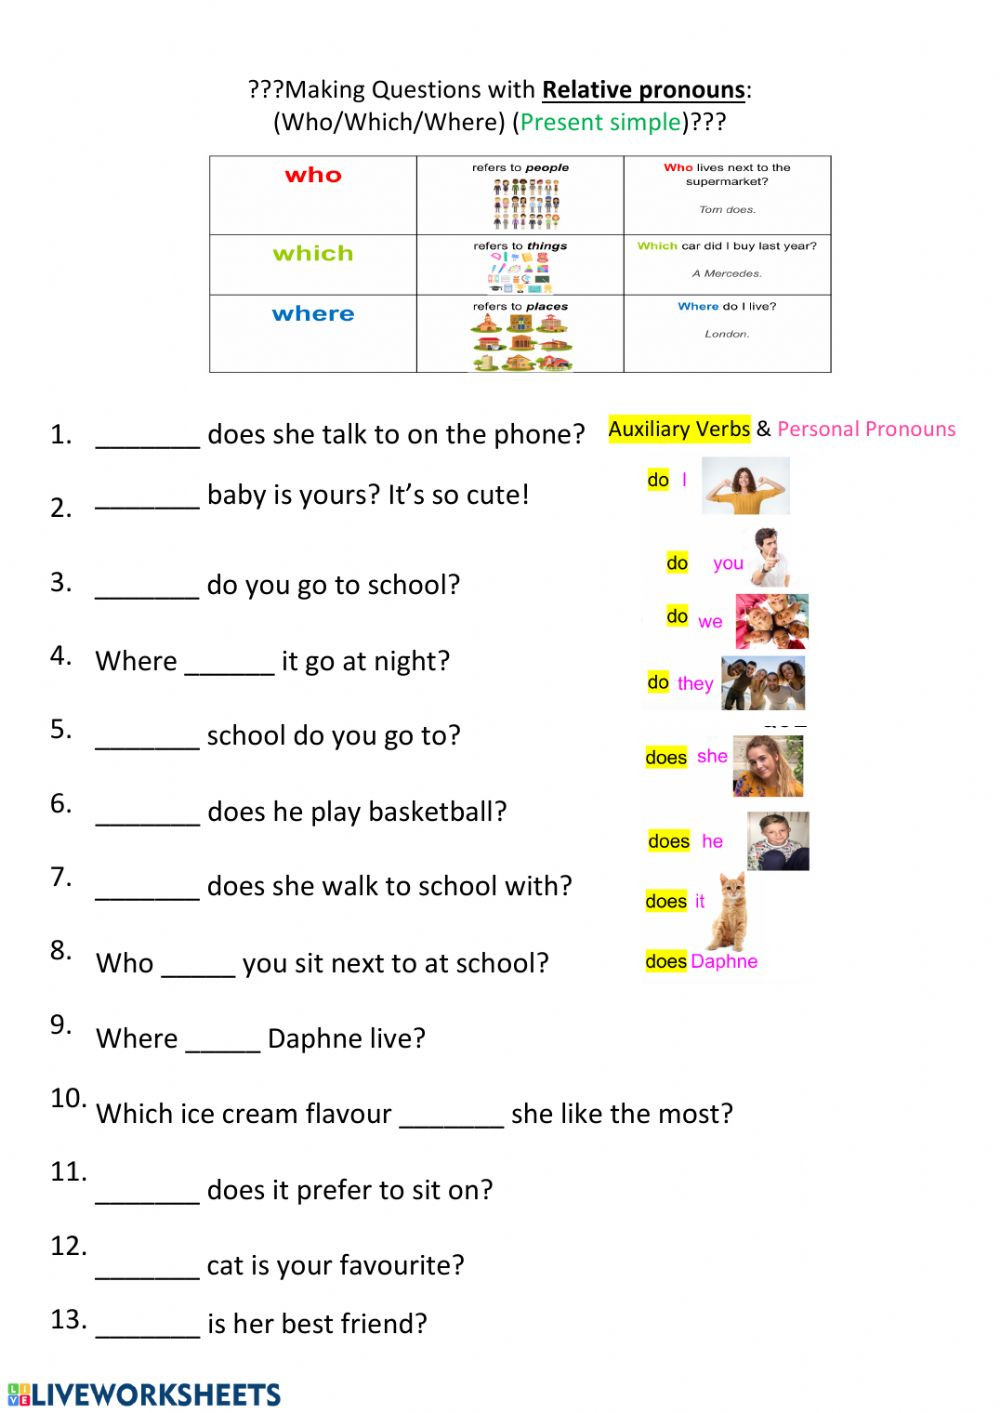 Relative Pronouns Worksheet Grade 4 Relative Pronoun Questions which where who Worksheet